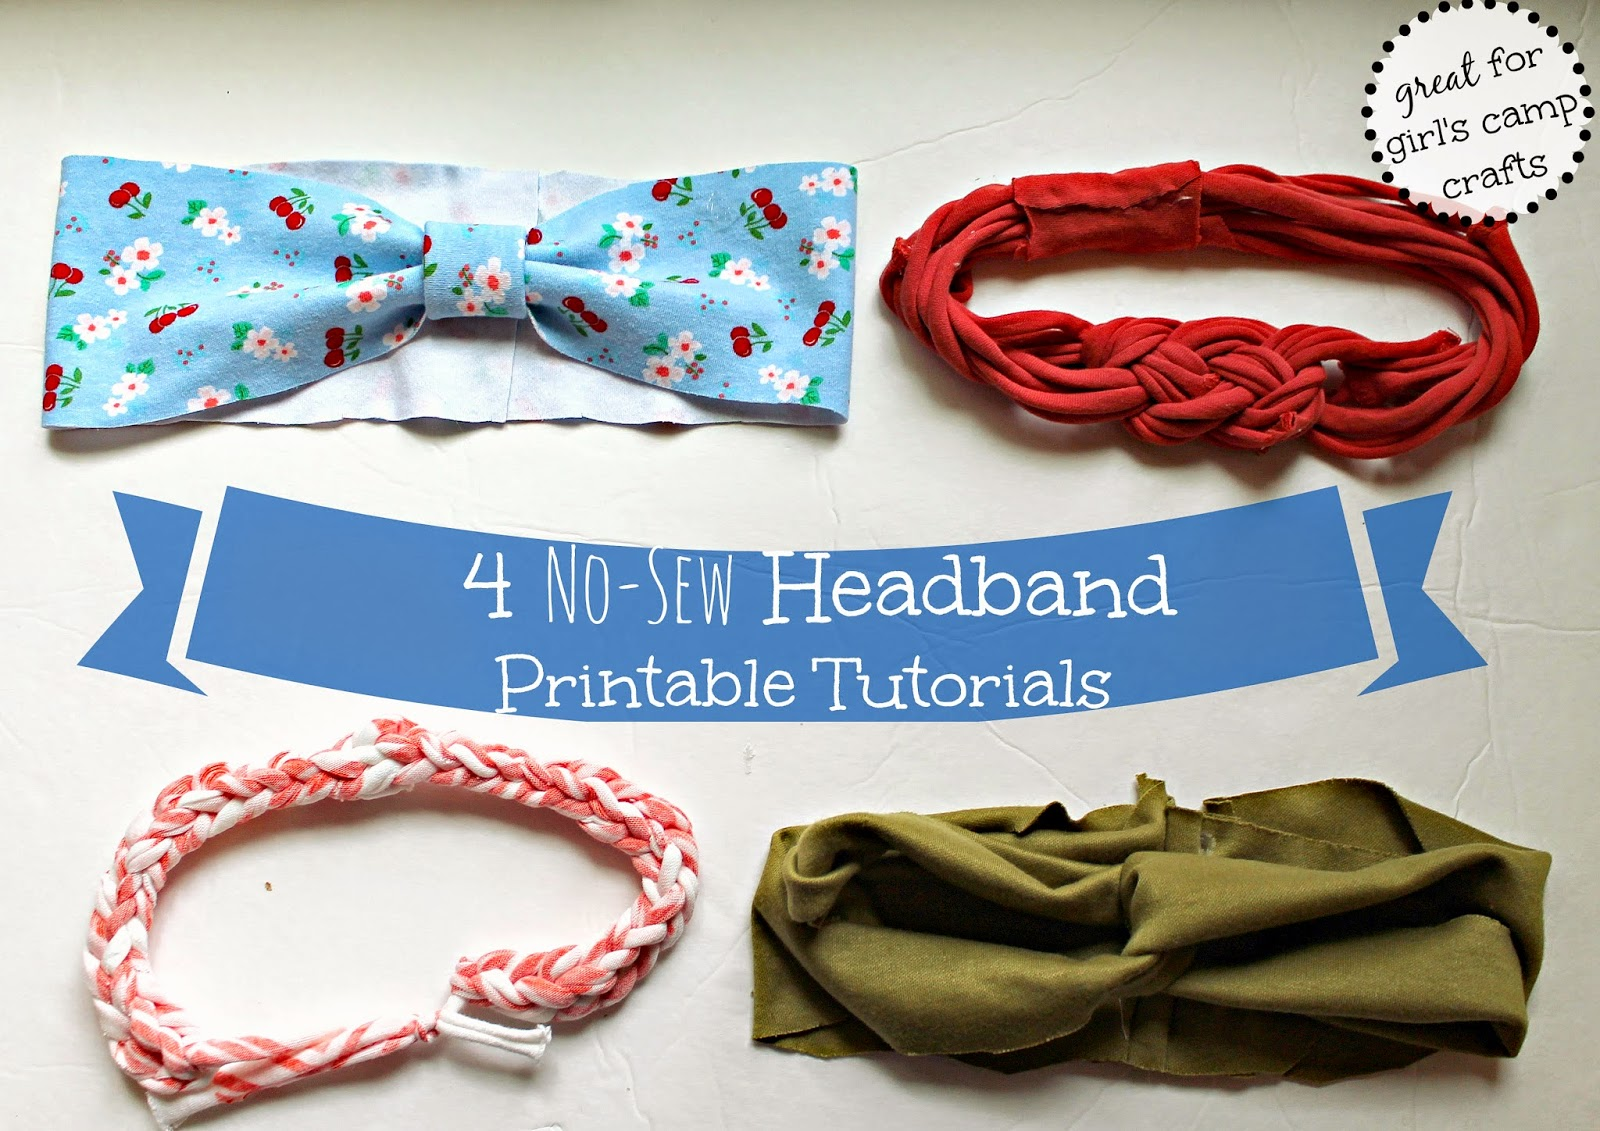 http://freshlycompleted.blogspot.com/2014/05/4-no-sew-headband-printable-tutorials.html